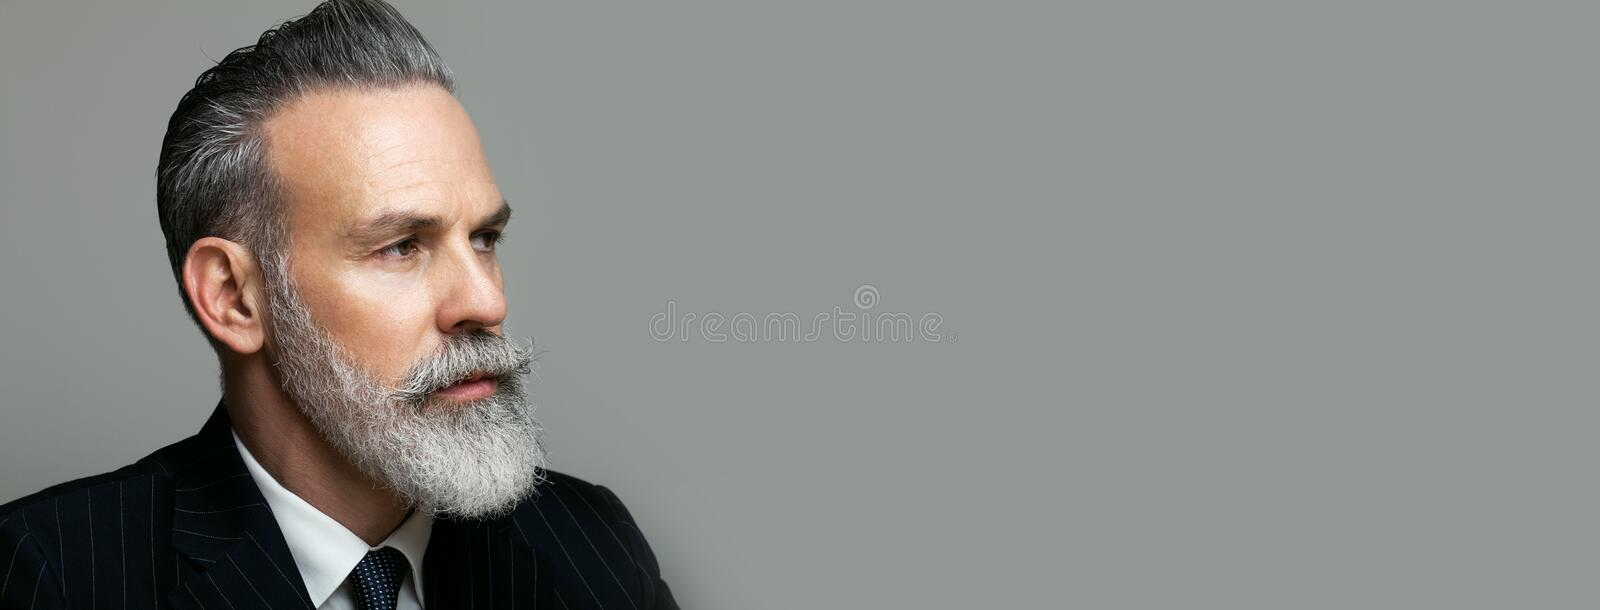 Close-up portrait of bearded gentleman wearing trendy suit over empty gray background. Copy Paste text space. Wide. royalty free stock images